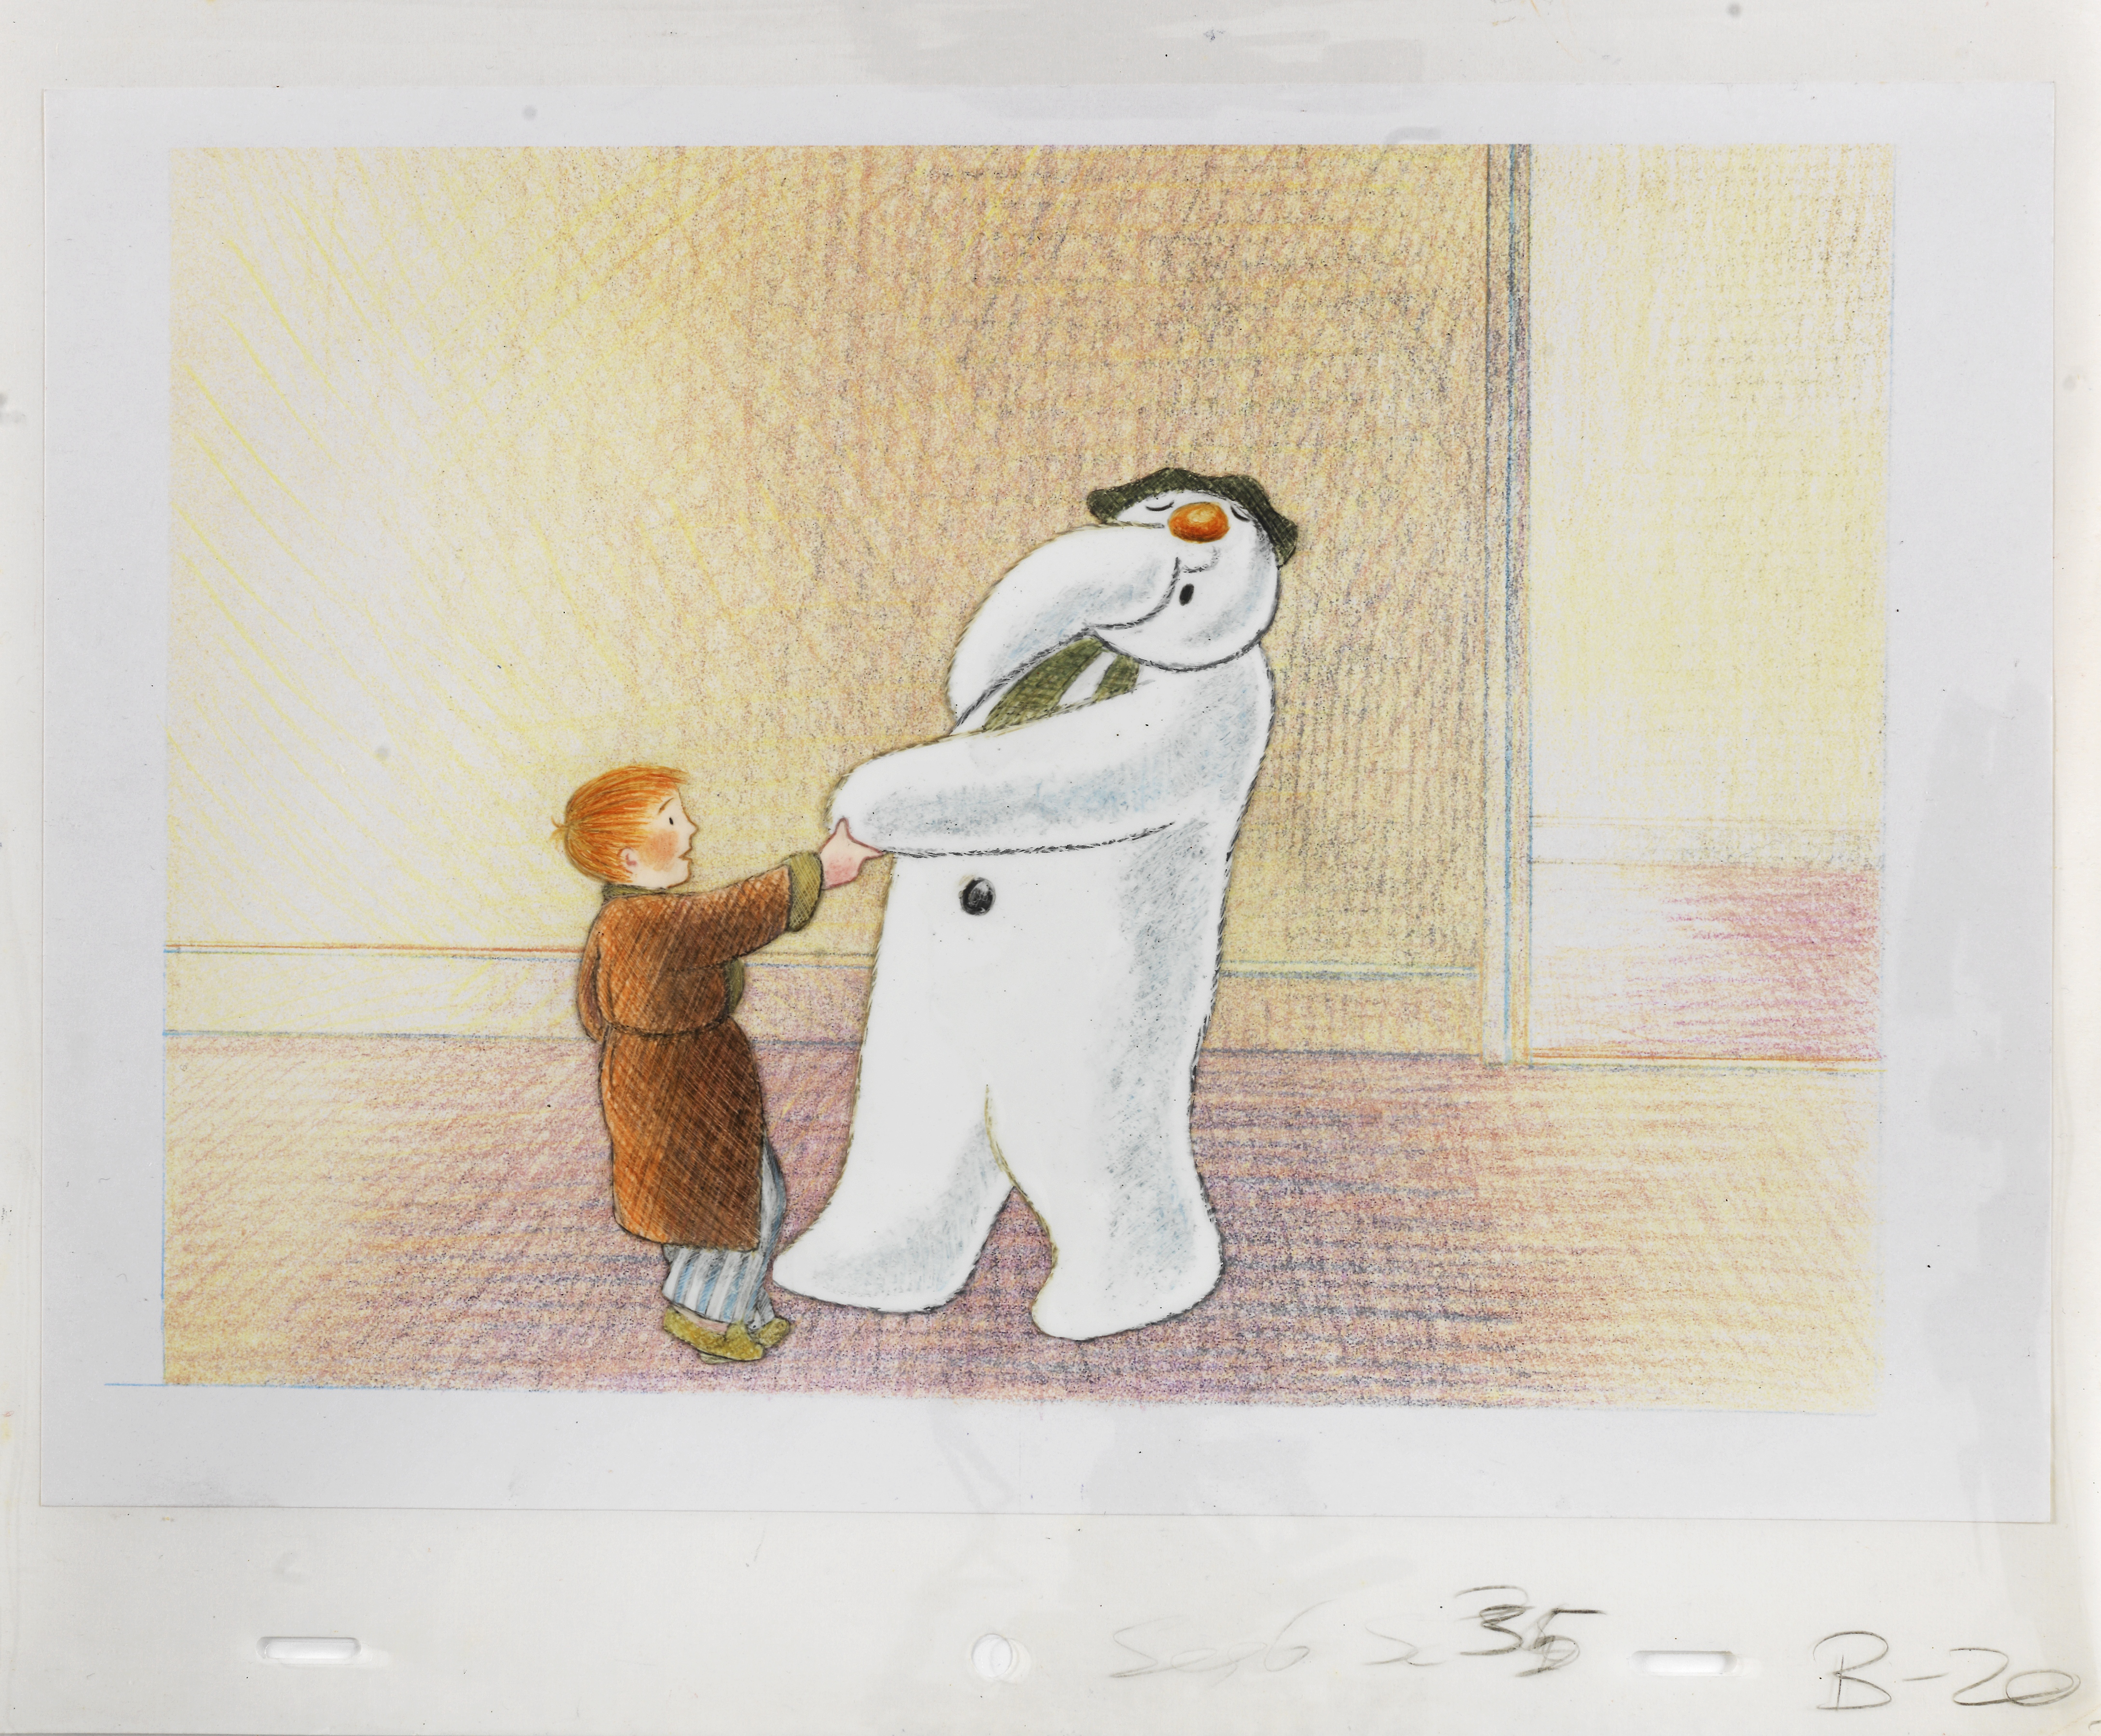 Lot 38 - The Snowman: an original animation cel of the Snowman and James in the house, 1982,